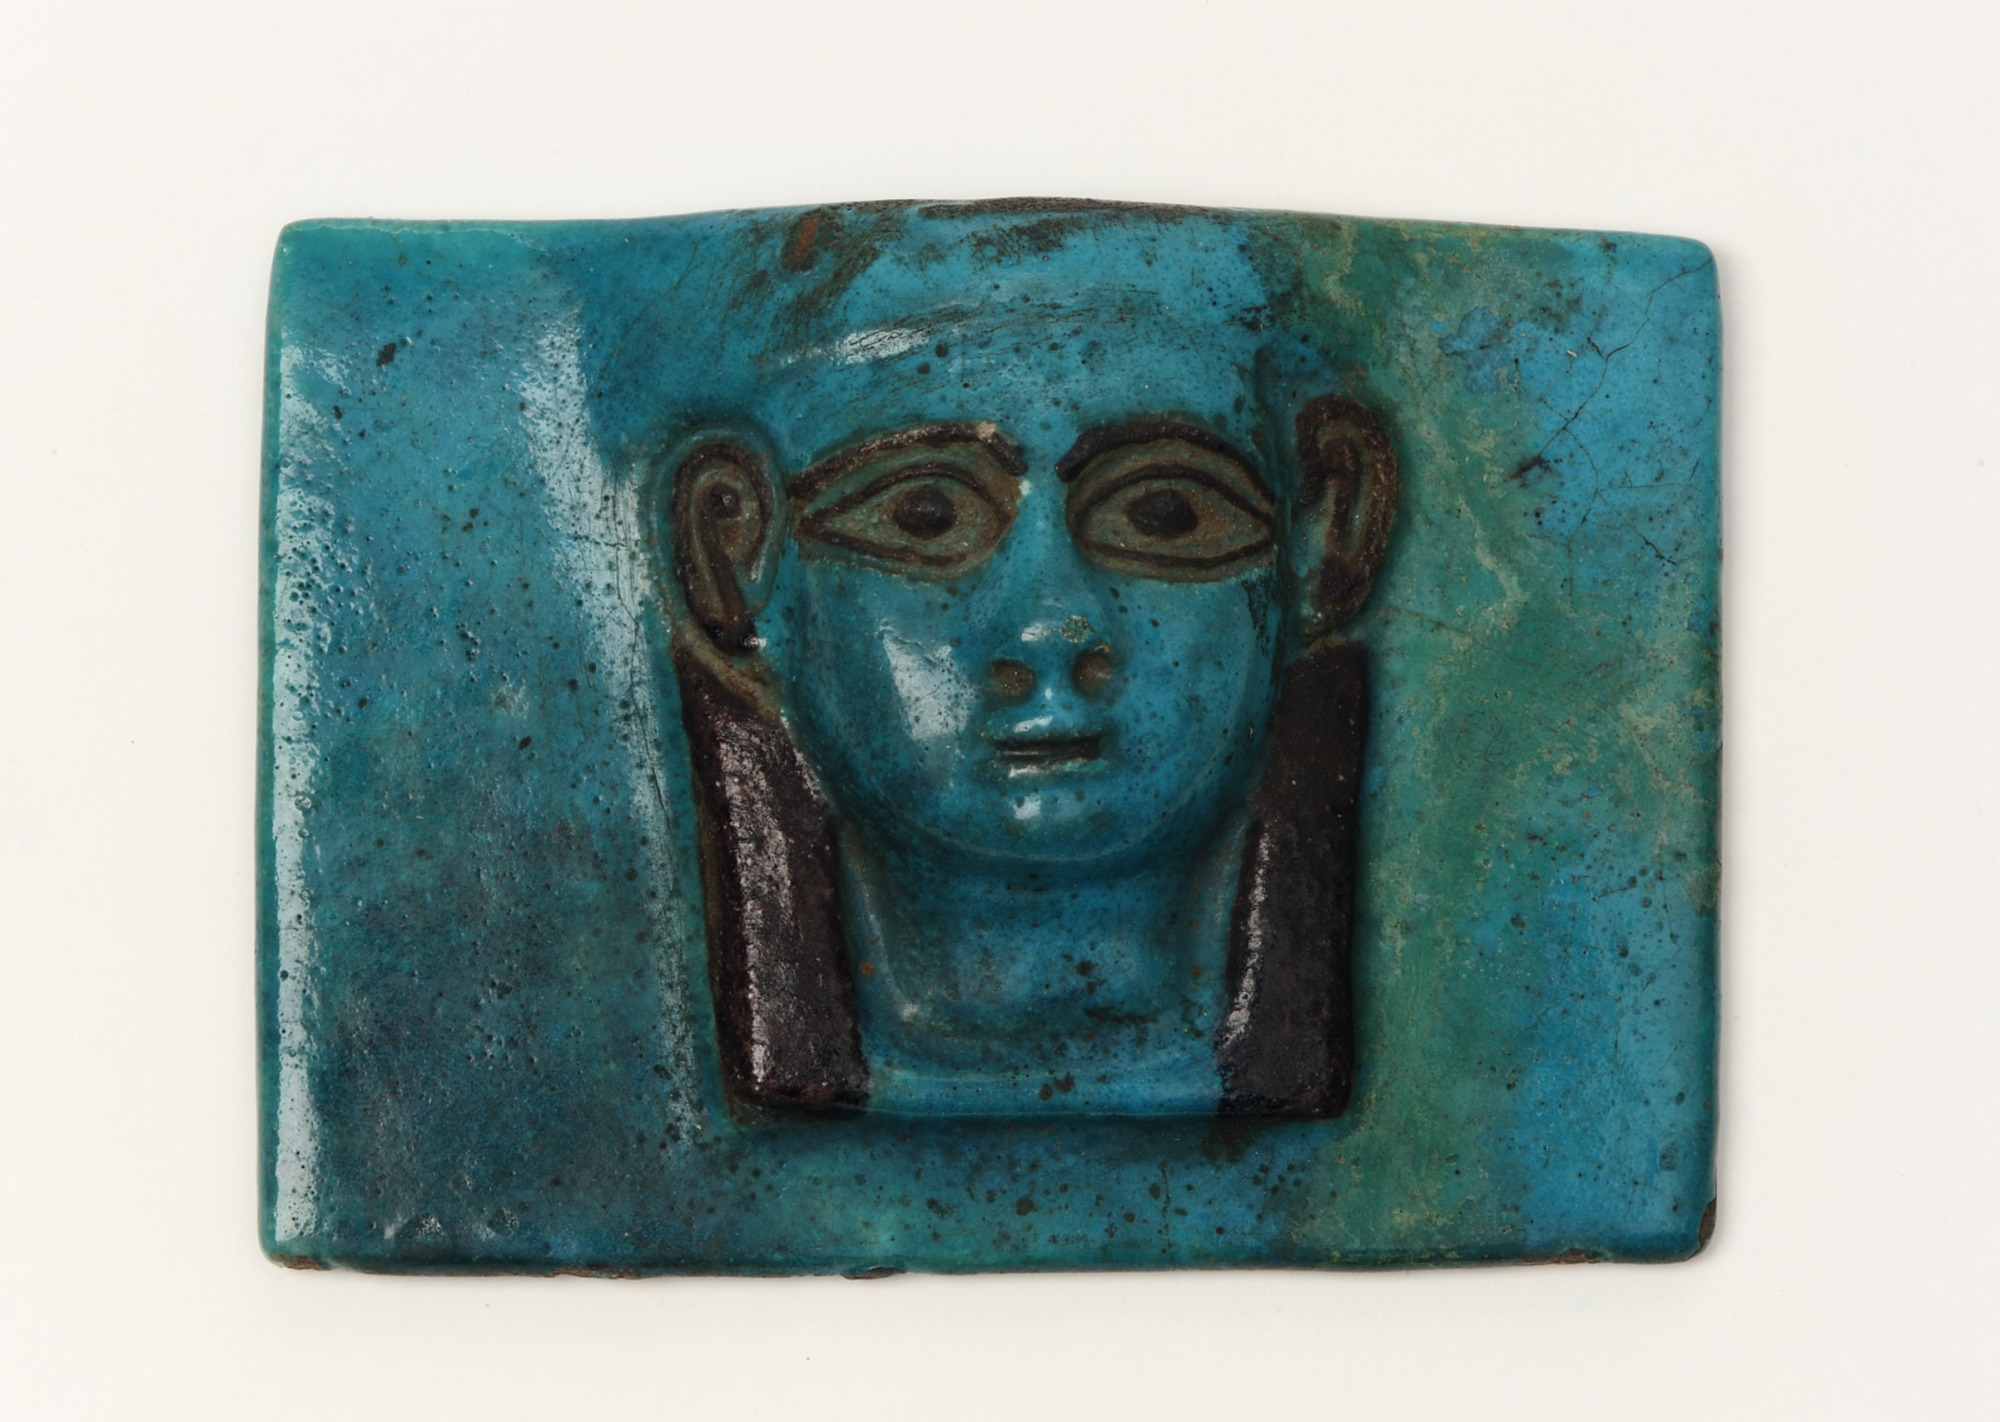 Thin oblong tile, with a female head in relief